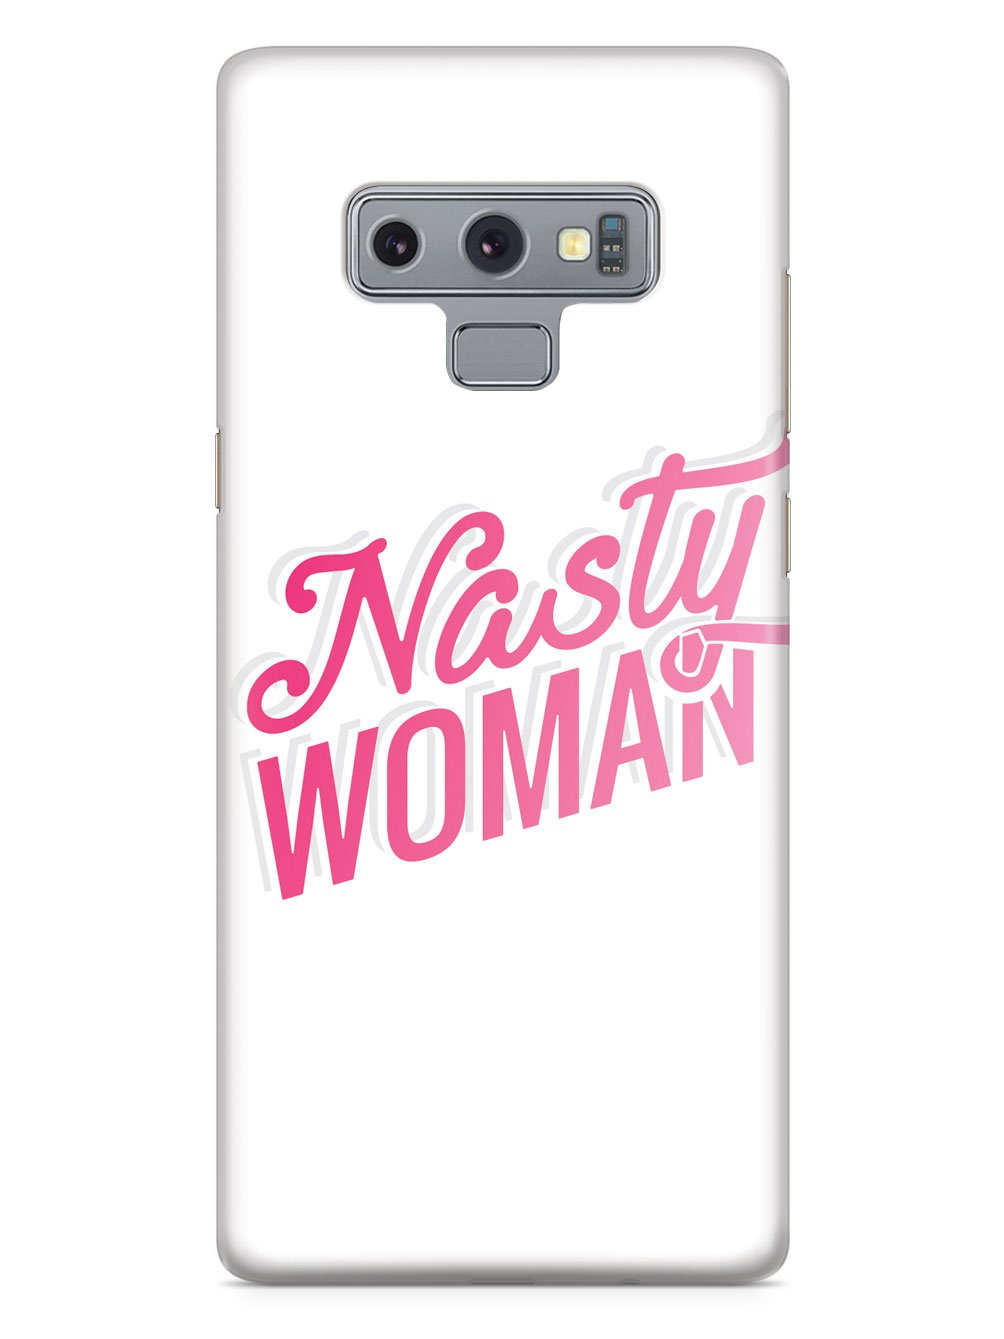 Nasty Woman - White Case - pipercleo.com